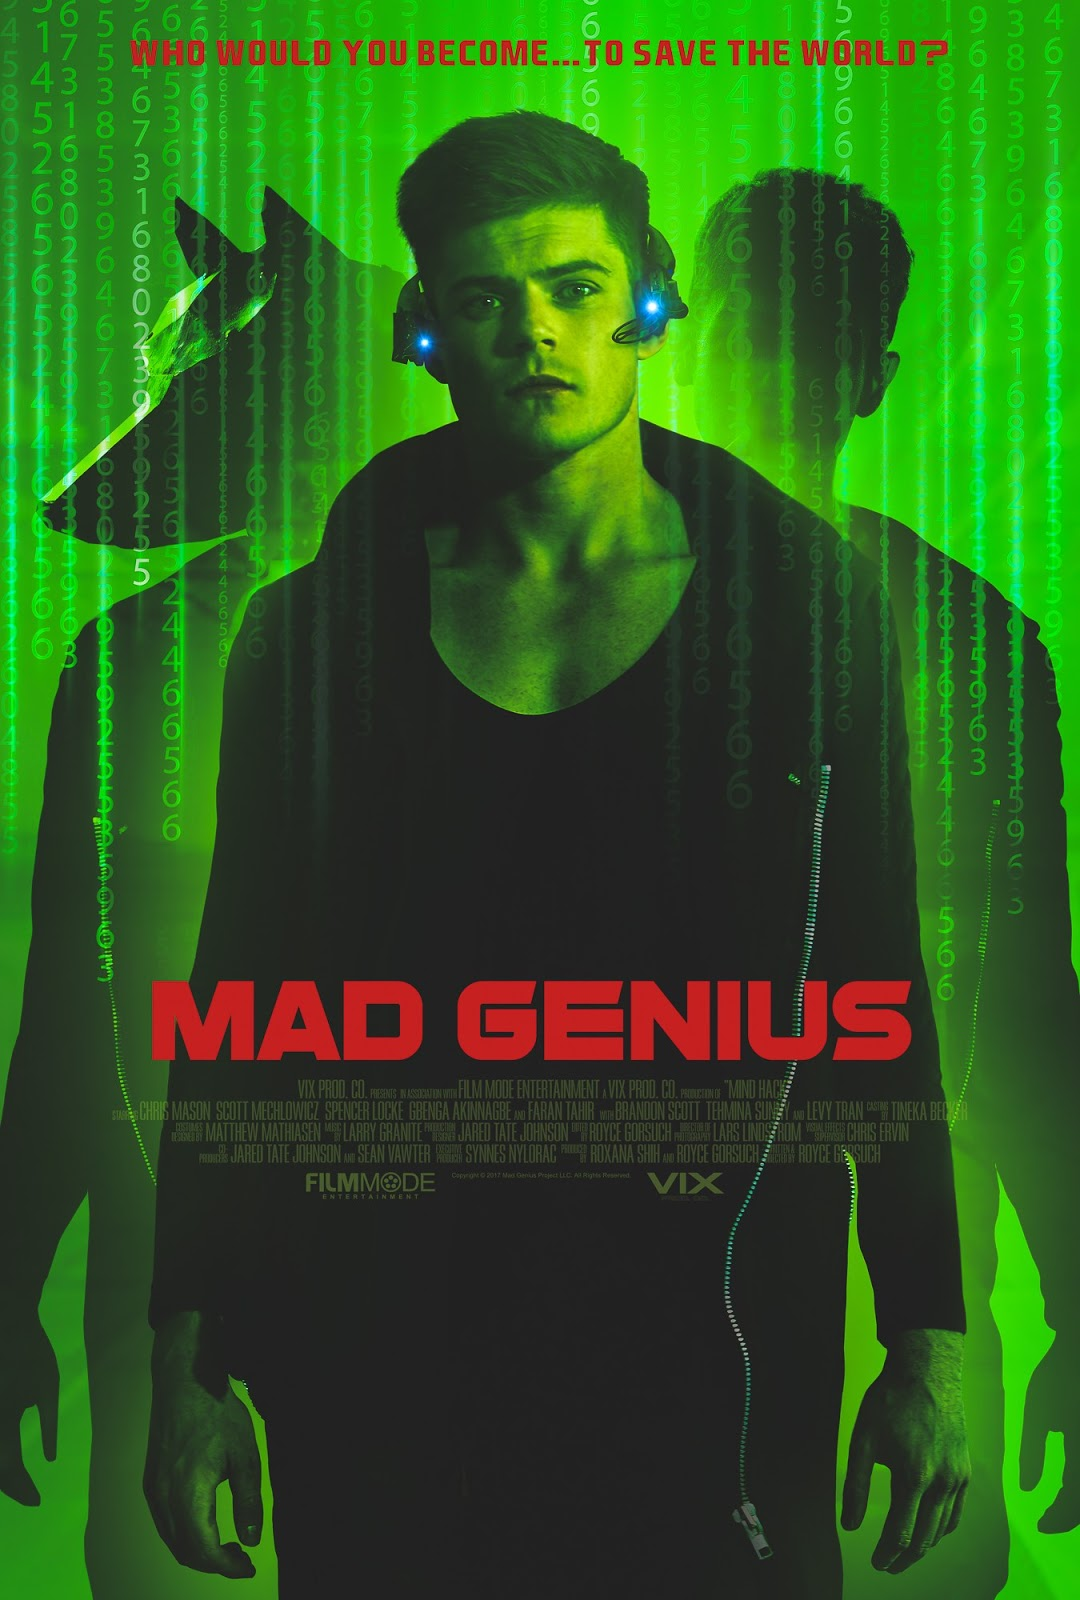 Interviews: Director Royce Gorsuch Talks About His Sci-Fi Film Mad Genius